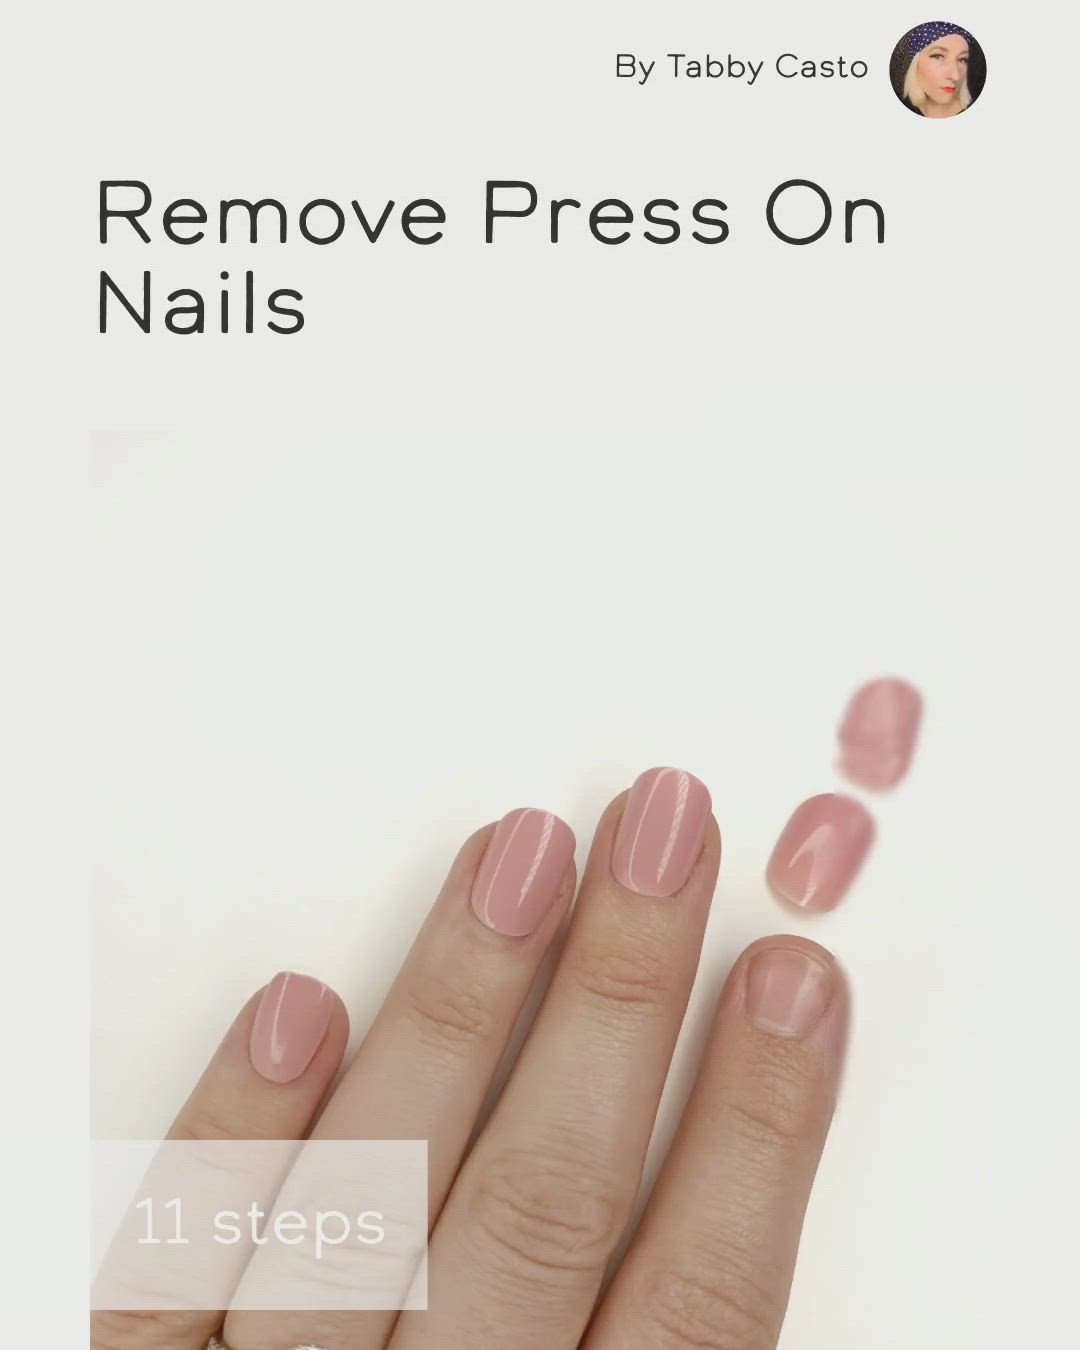 Remove Press On Nails Video Video In 2020 Press On Nails Best Press On Nails Manicure At Home